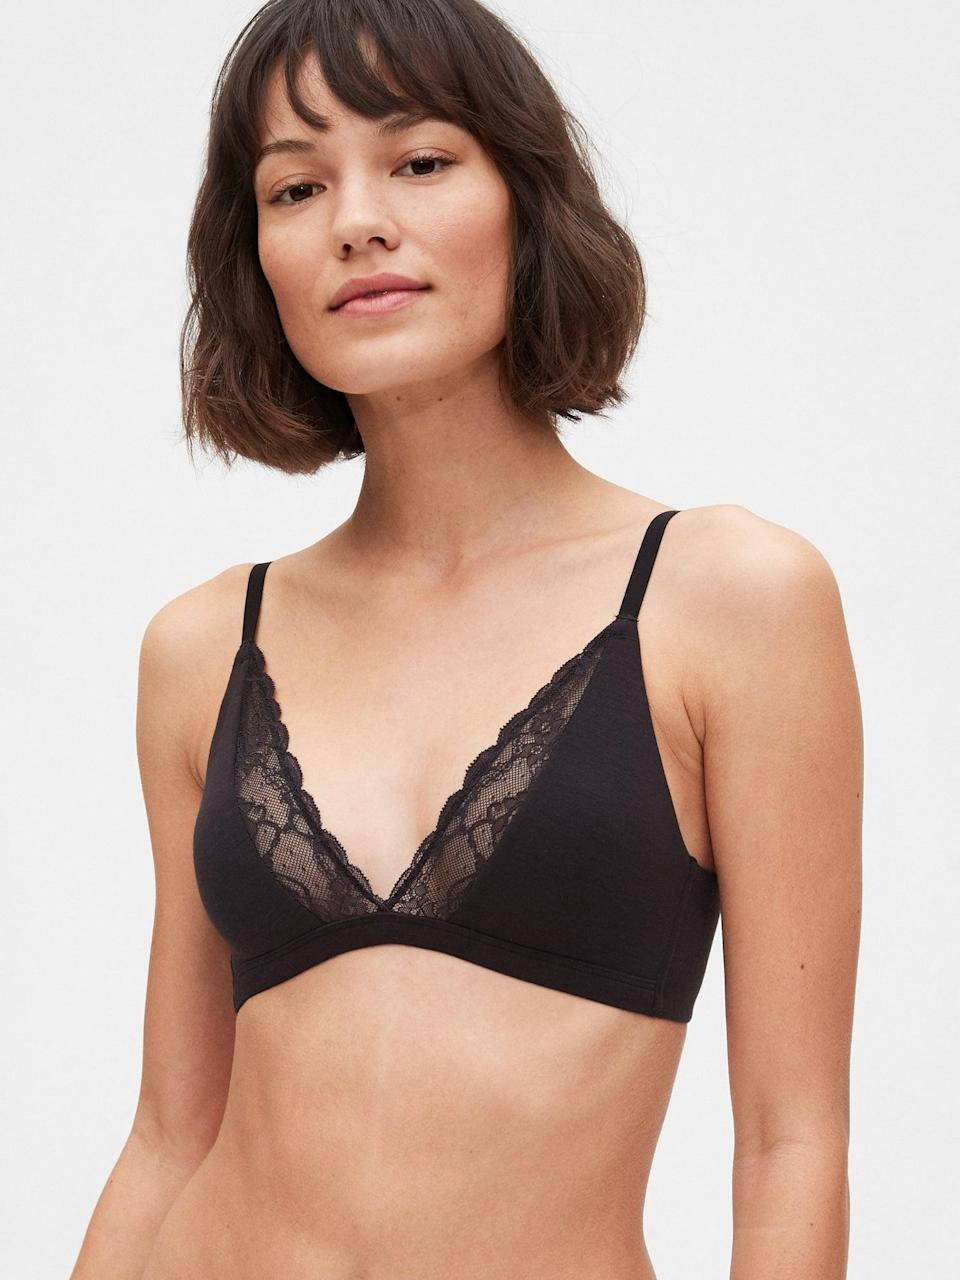 <p>Black lace is always sultry, and we love this <span>Gap Breathe Lace Plunge Bralette</span> ($26, originally $30) adding some spice to an everyday bralette. </p>